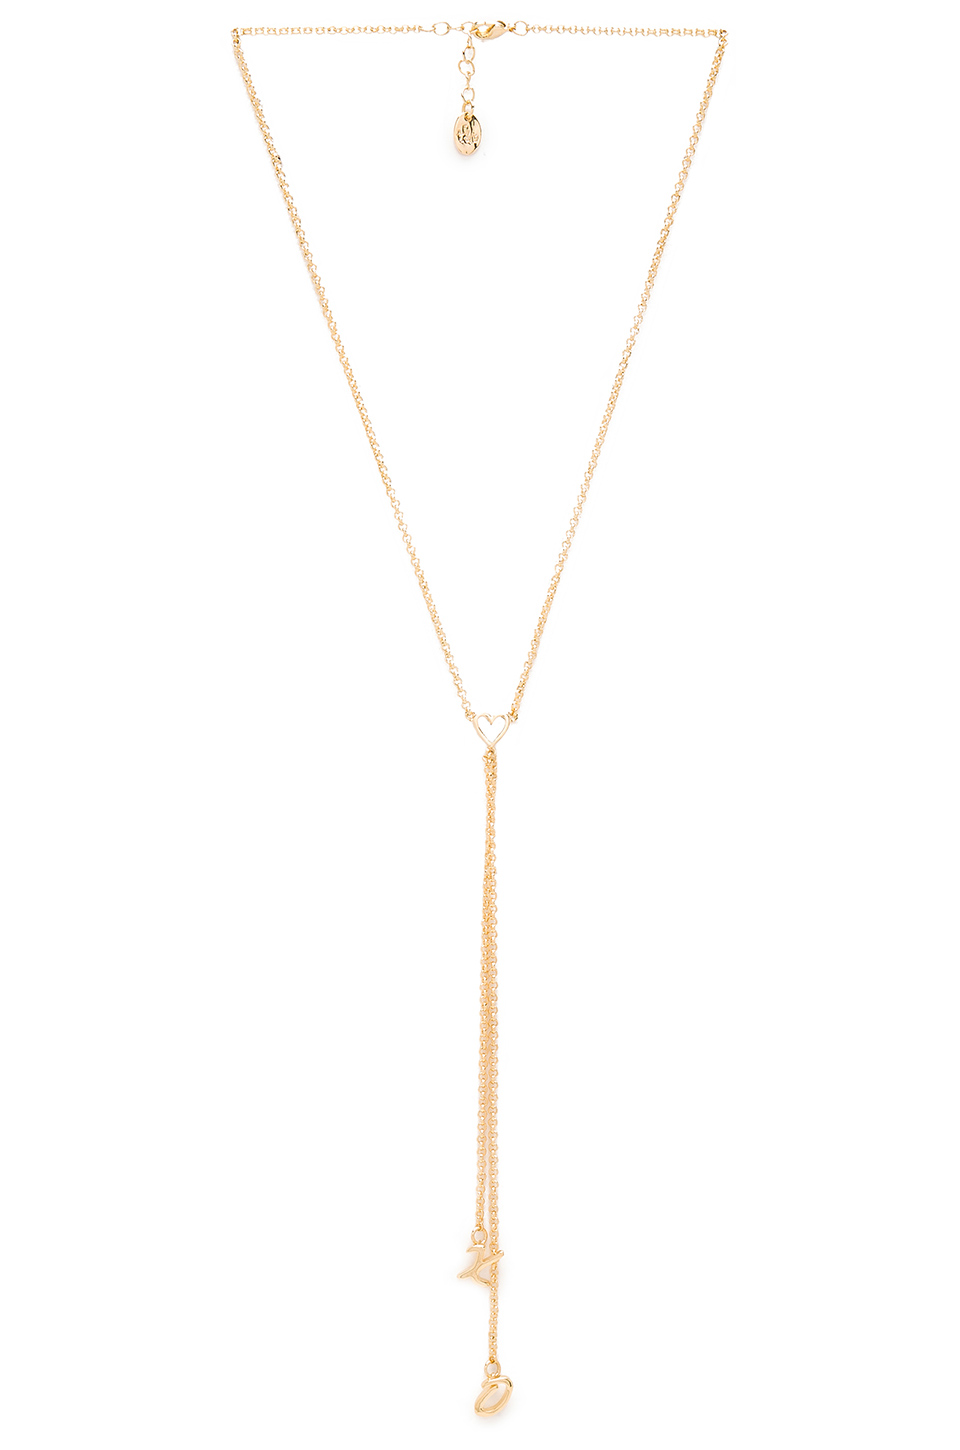 XO LARIAT NECKLACE - $91